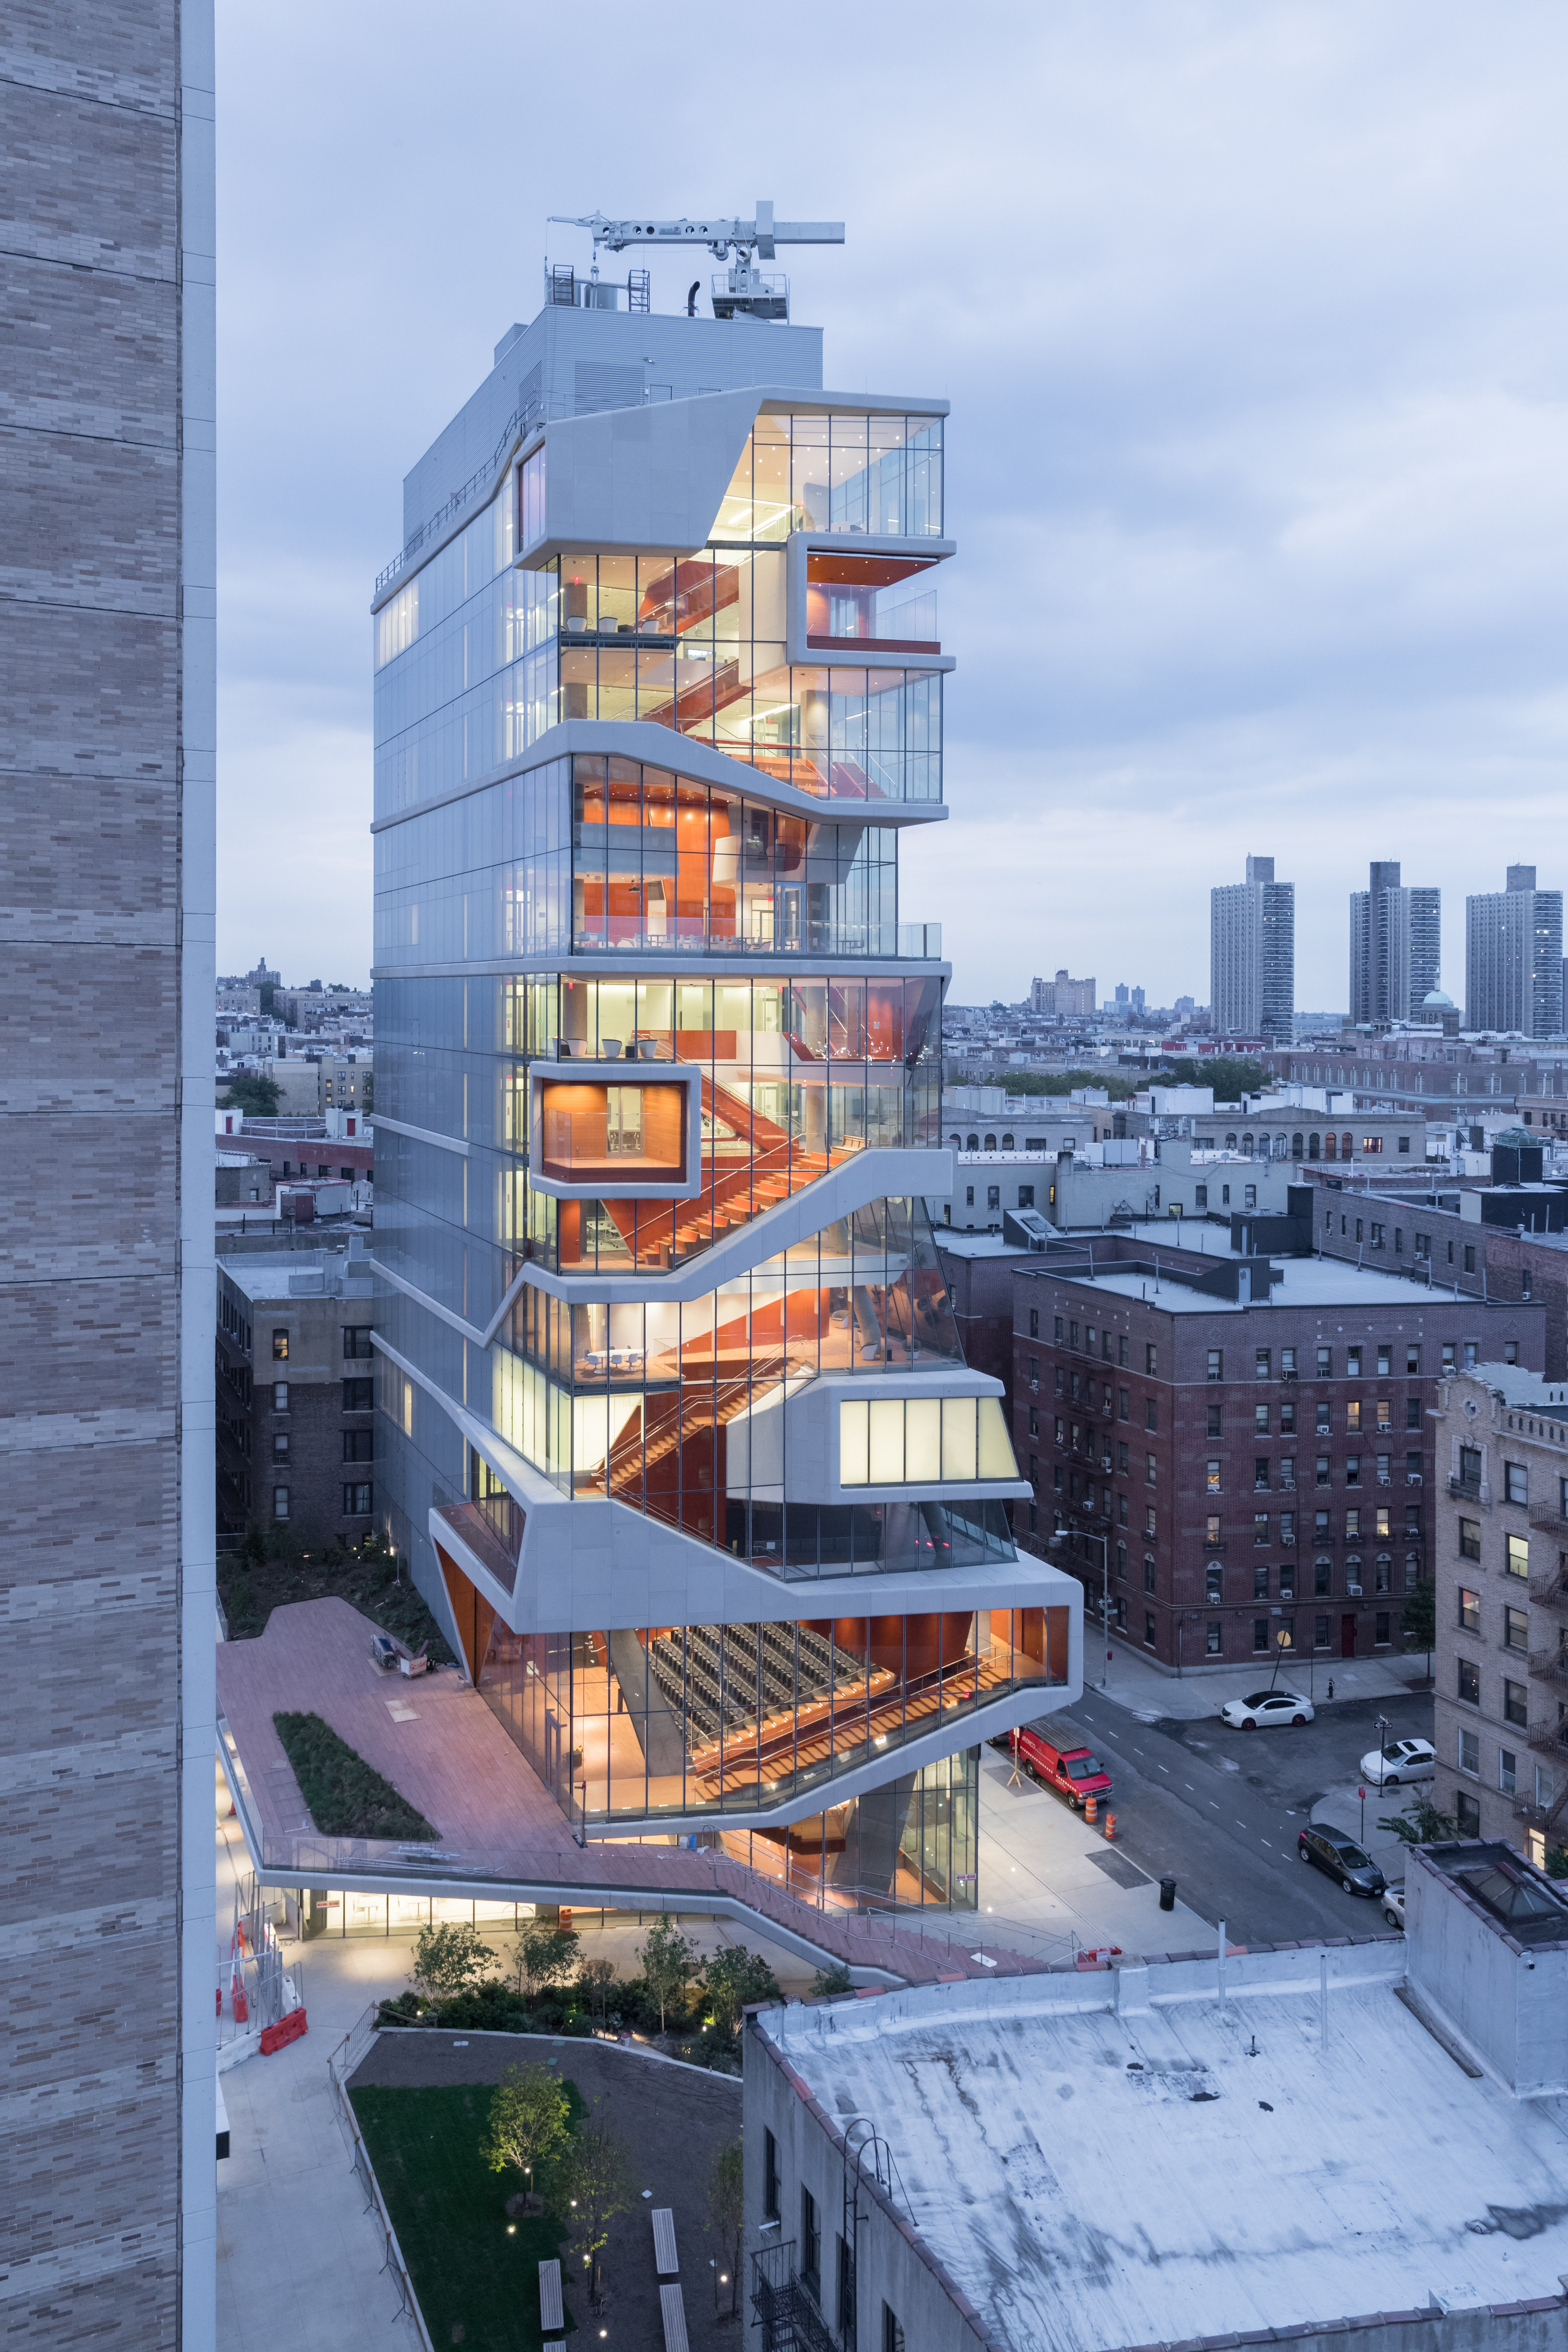 Best Architectural Designs In the World Luxury the 9 Best New University Buildings Around the World